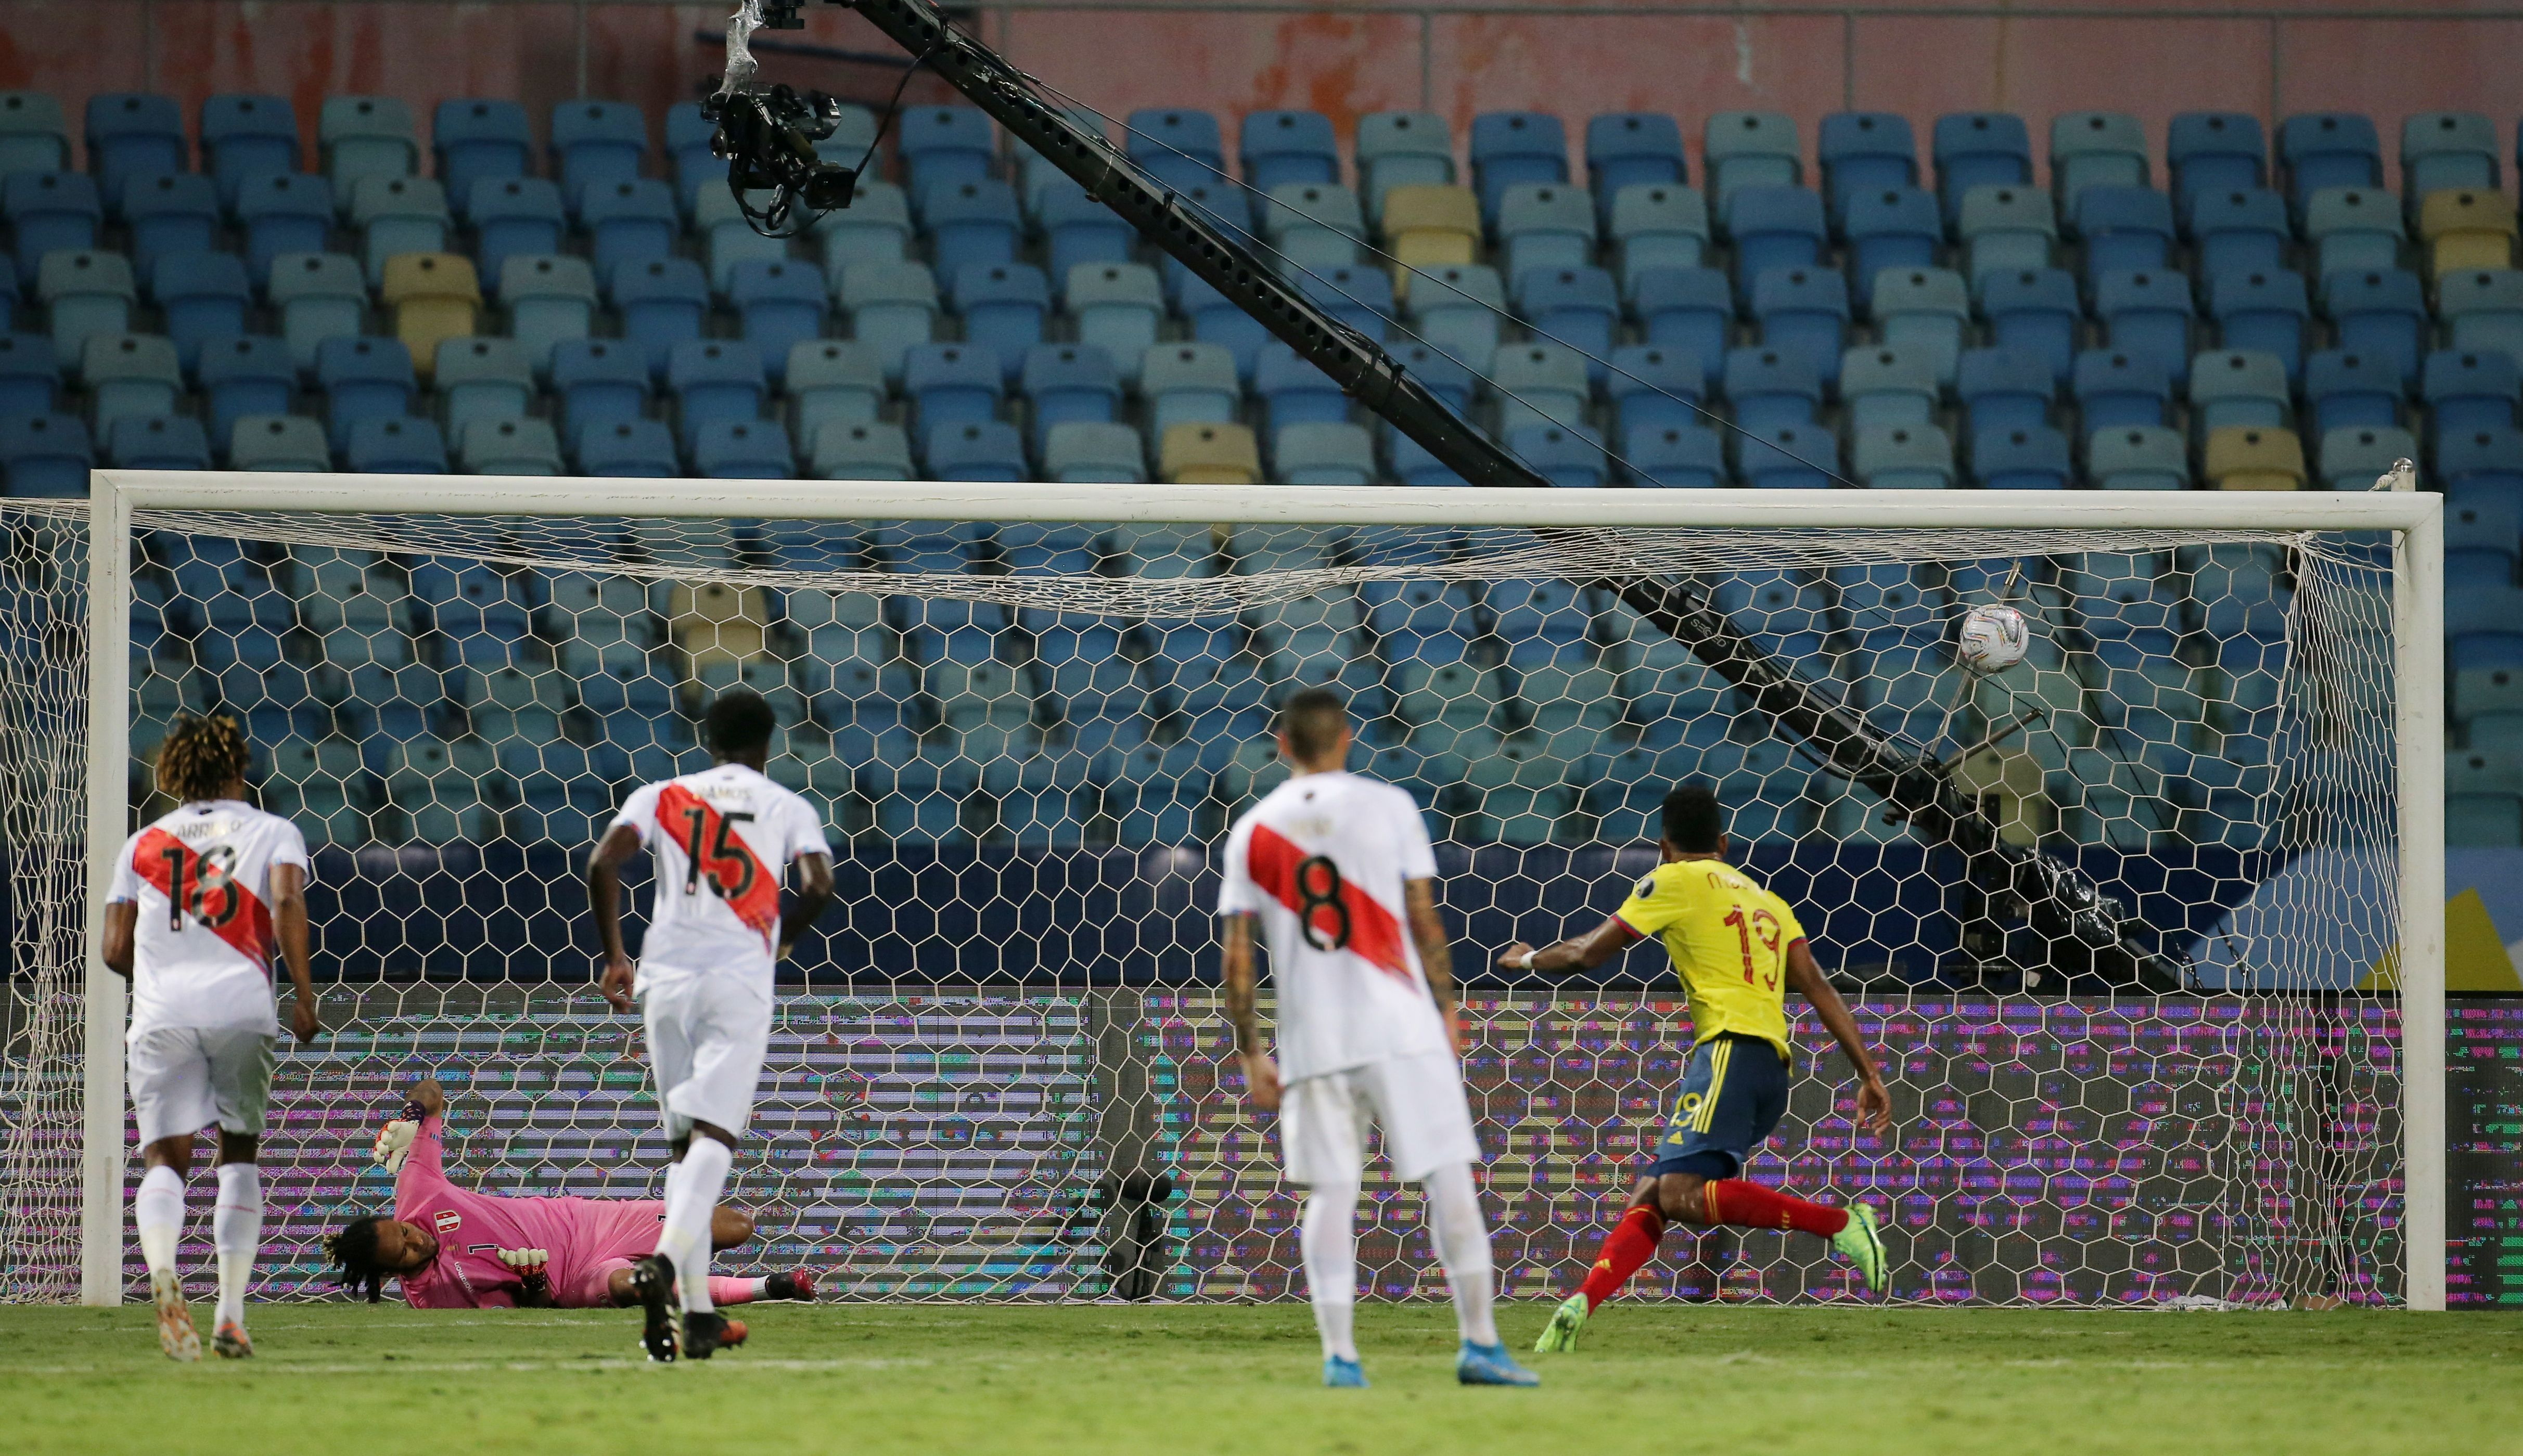 Soccer Football - Copa America 2021 - Group B - Colombia v Peru - Estadio Olimpico, Goiania, Brazil - June 20, 2021 Colombia's Miguel Borja scores their first goal from the penalty spot REUTERS/Diego Vara